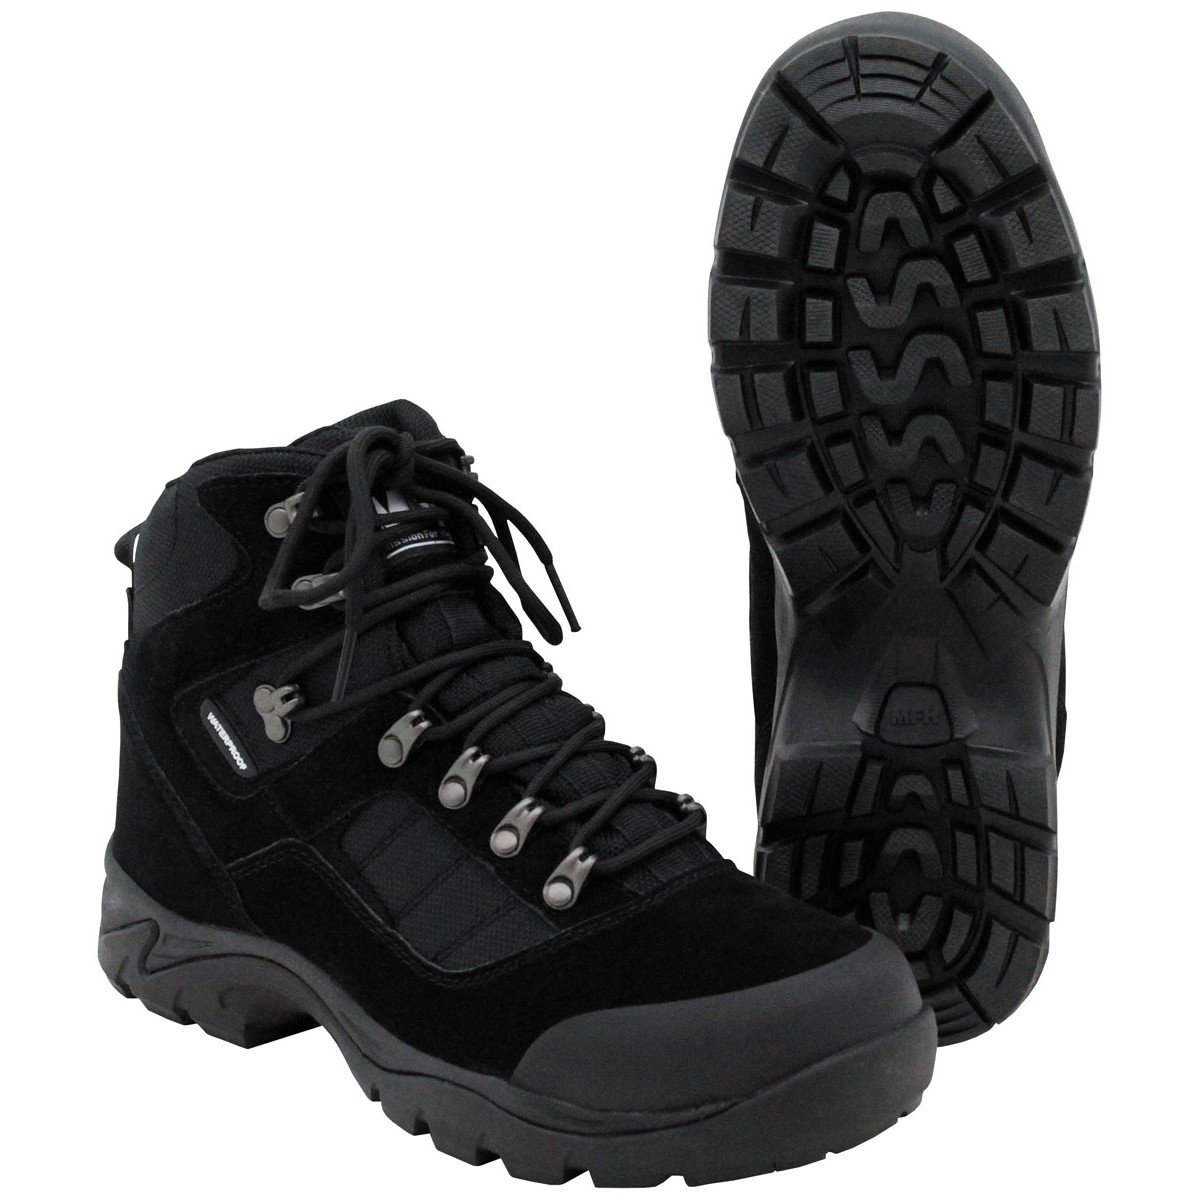 Tactical Police Security Combat Boots w/ HBR Membrane - Black